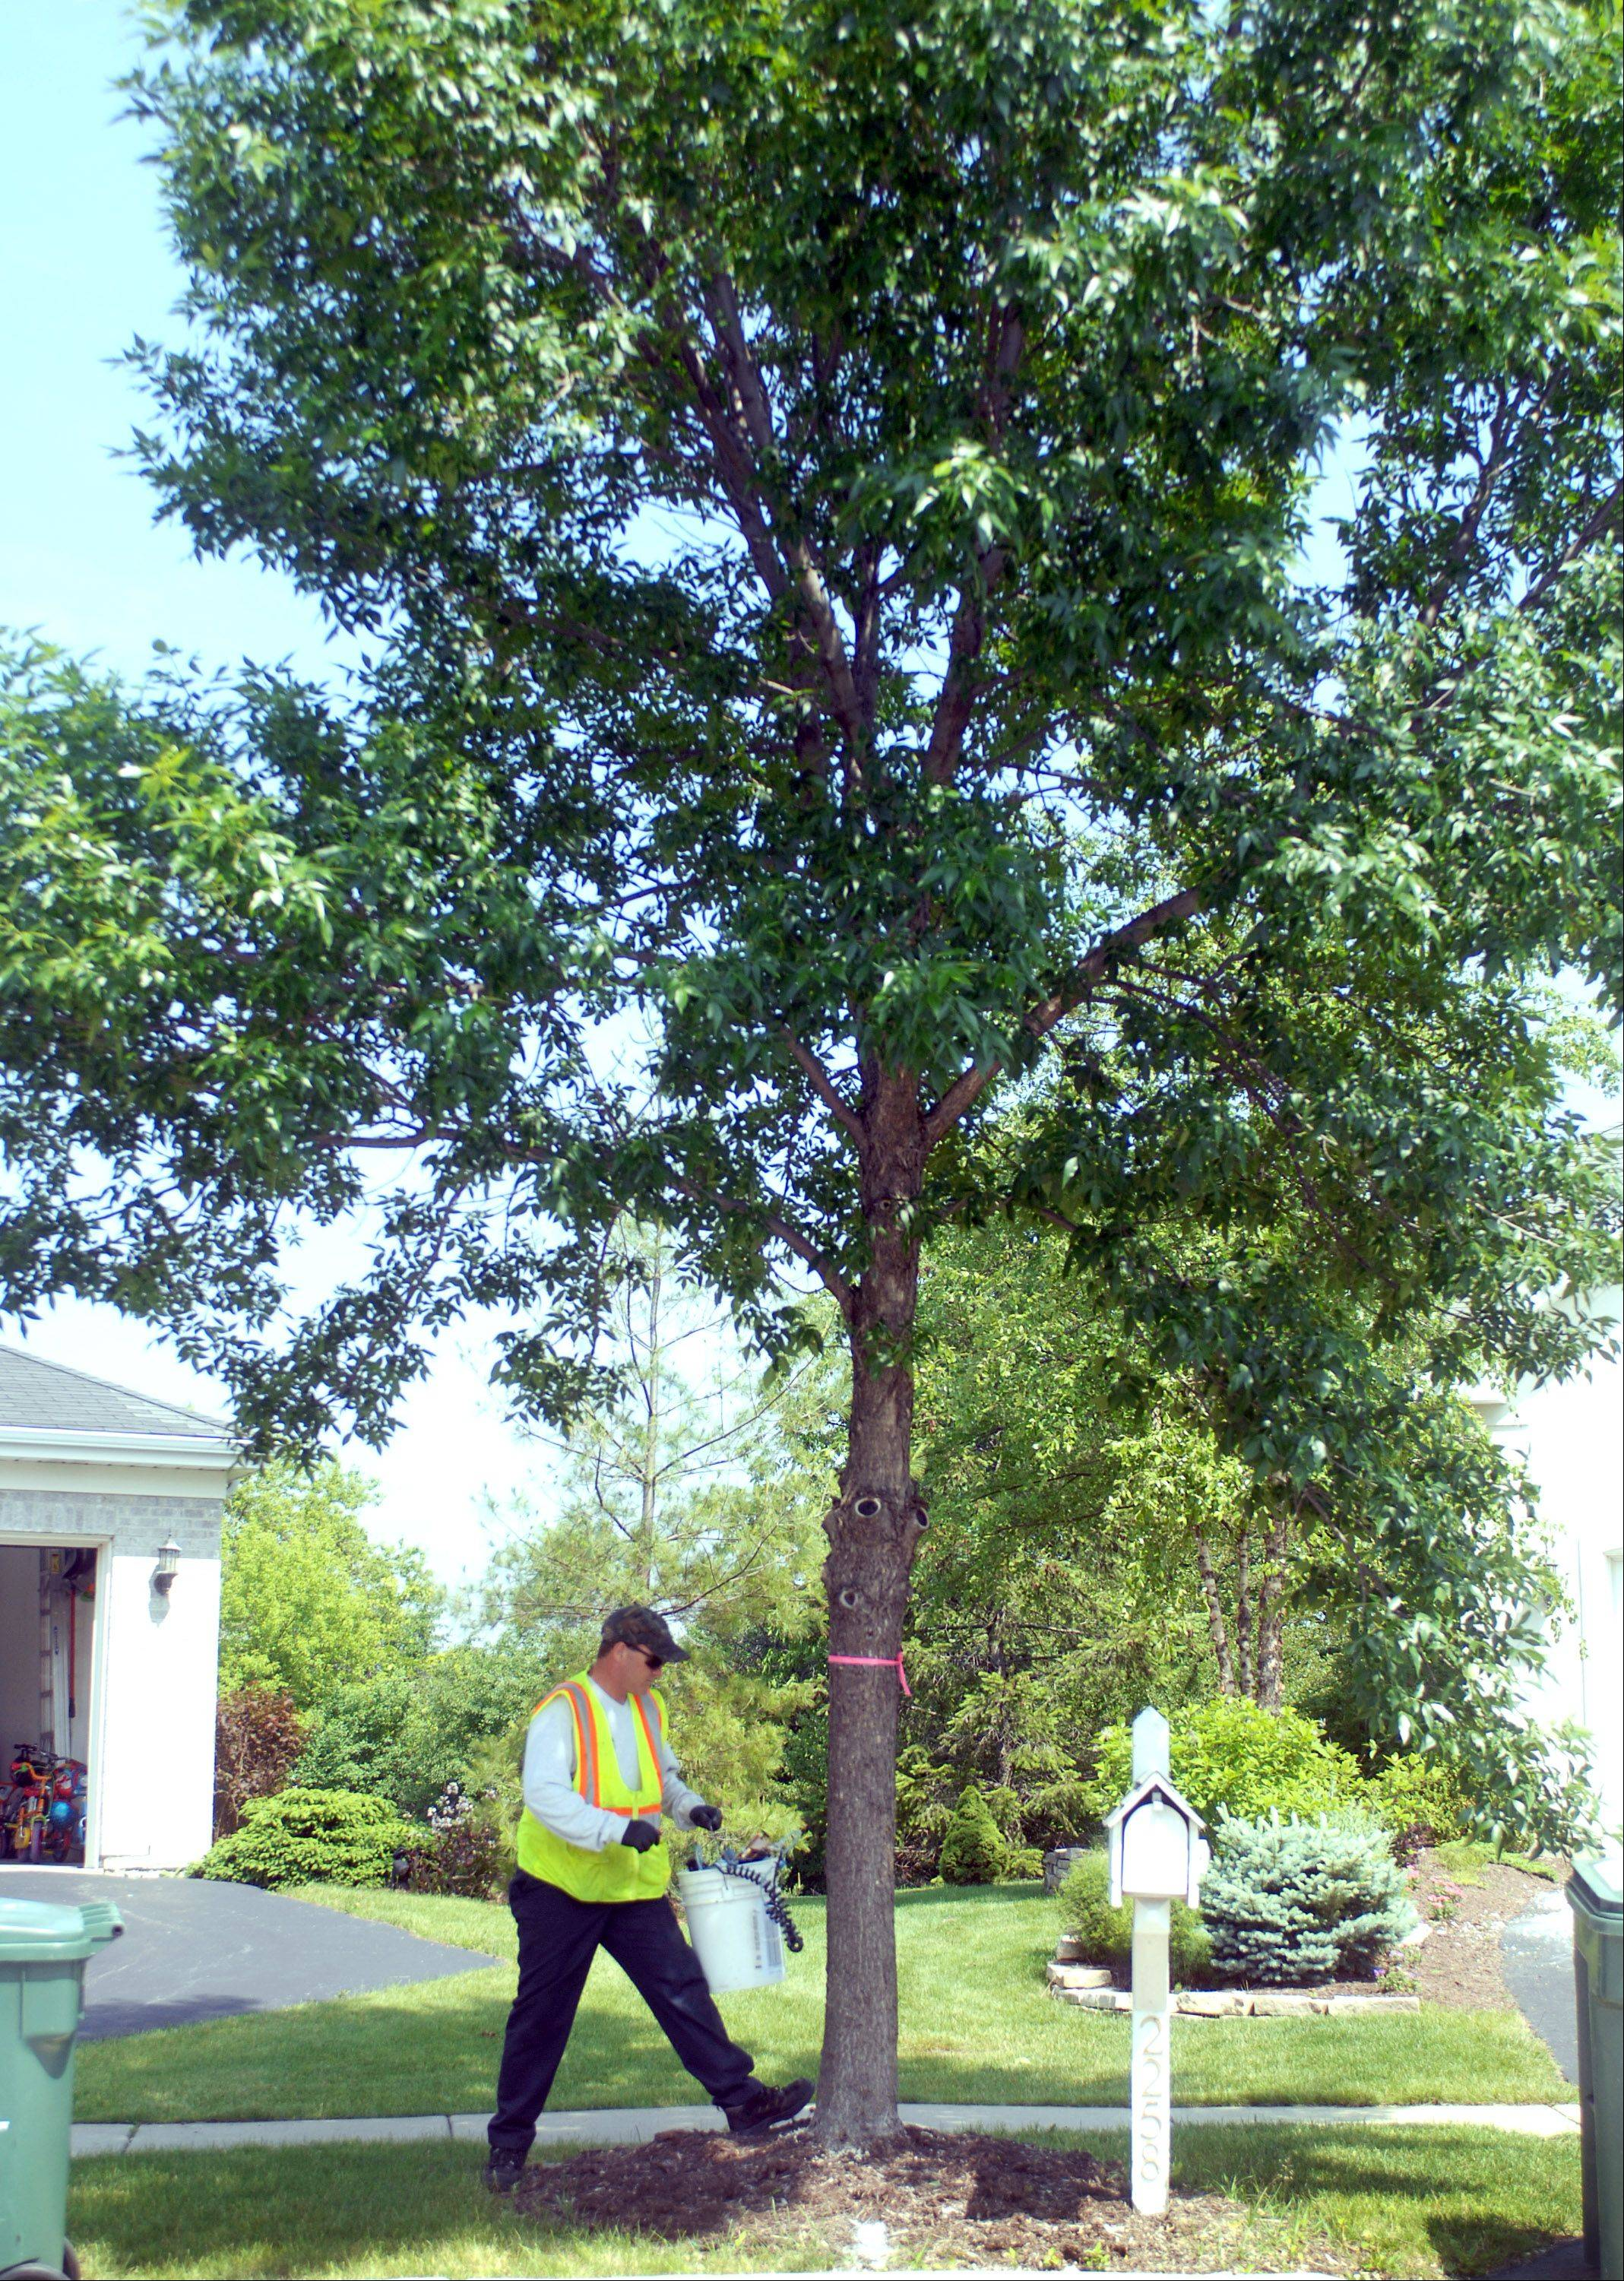 Gurnee Public Works employee Karl Davis treats an ash tree for the emerald ash borer in the Steeple Pointe subdivision Friday morning.